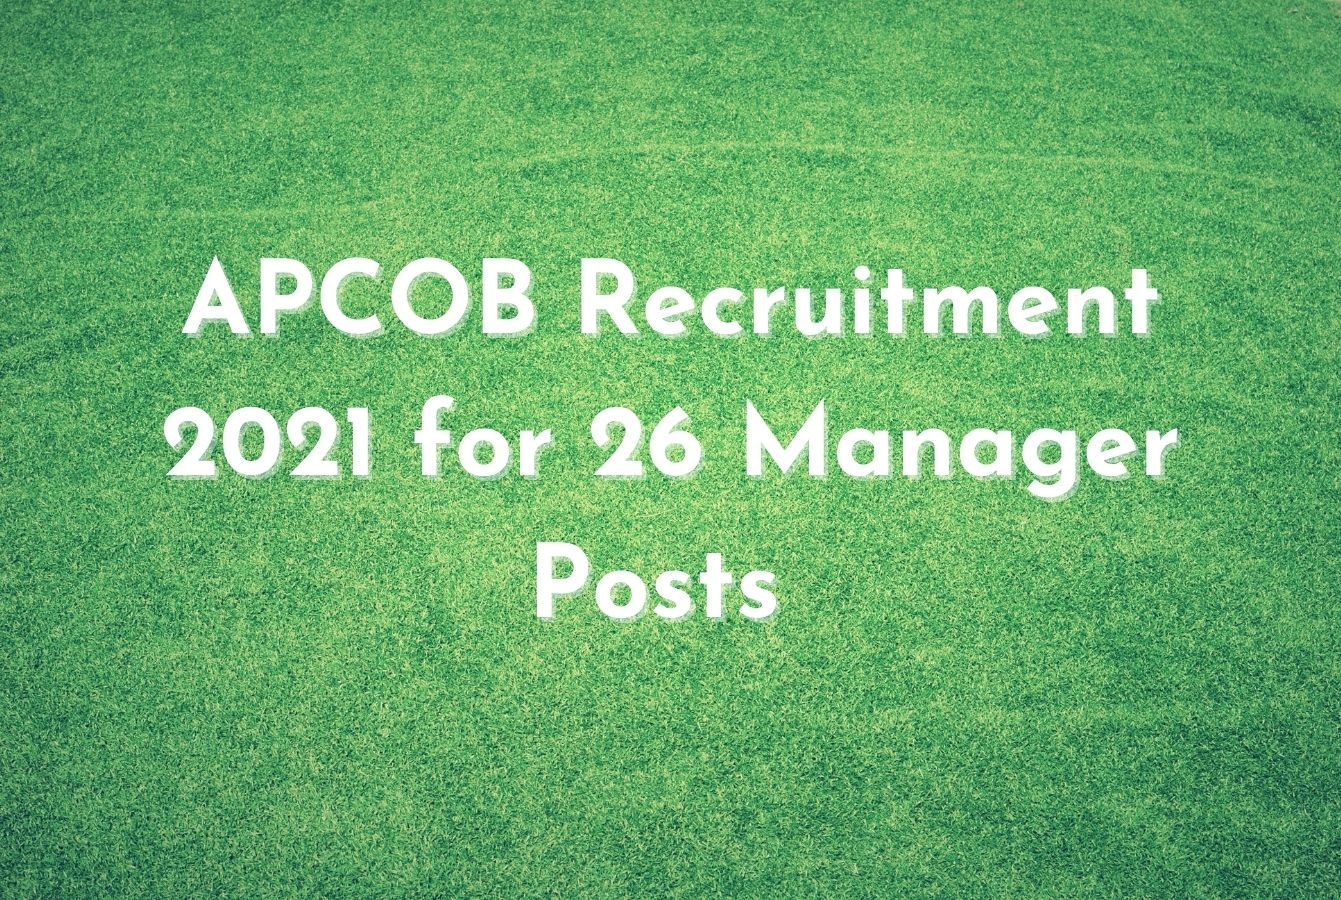 APCOB Recruitment 2021 for 26 Manager Posts